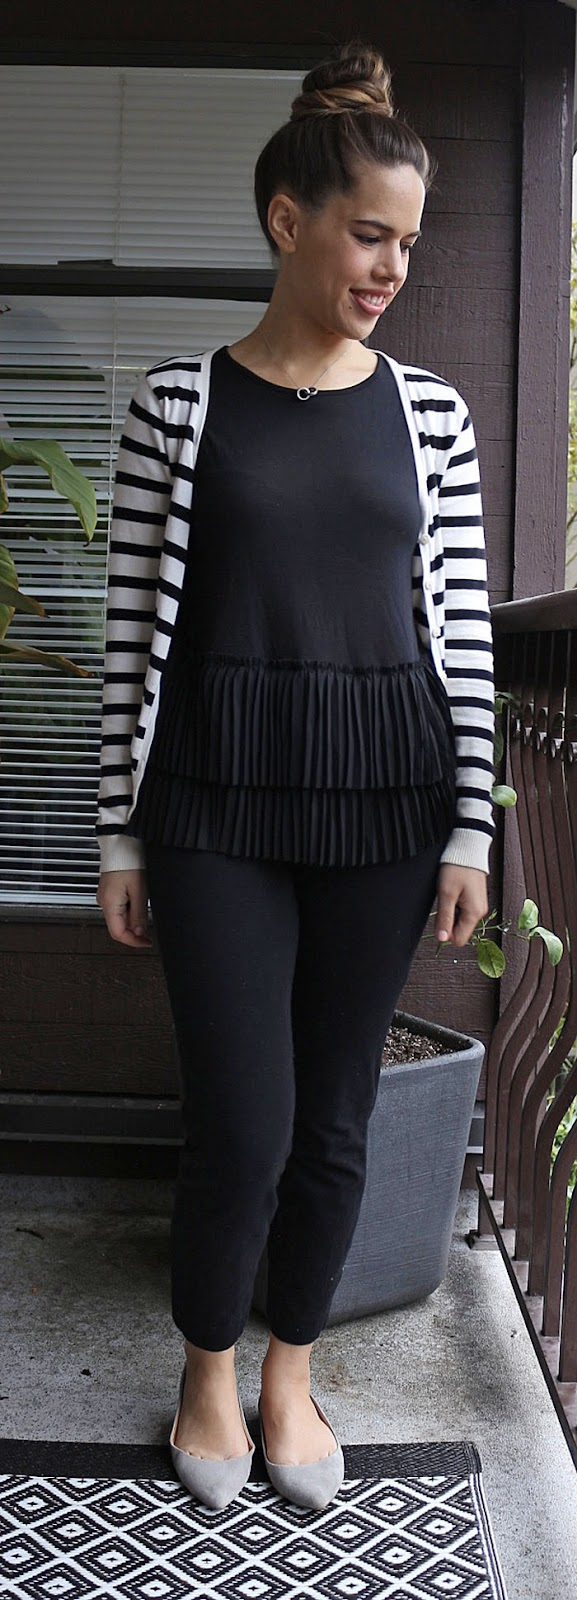 Jules in Flats - Banana Republic Tiered Ruffle Blouse, H&M Striped Cardigan